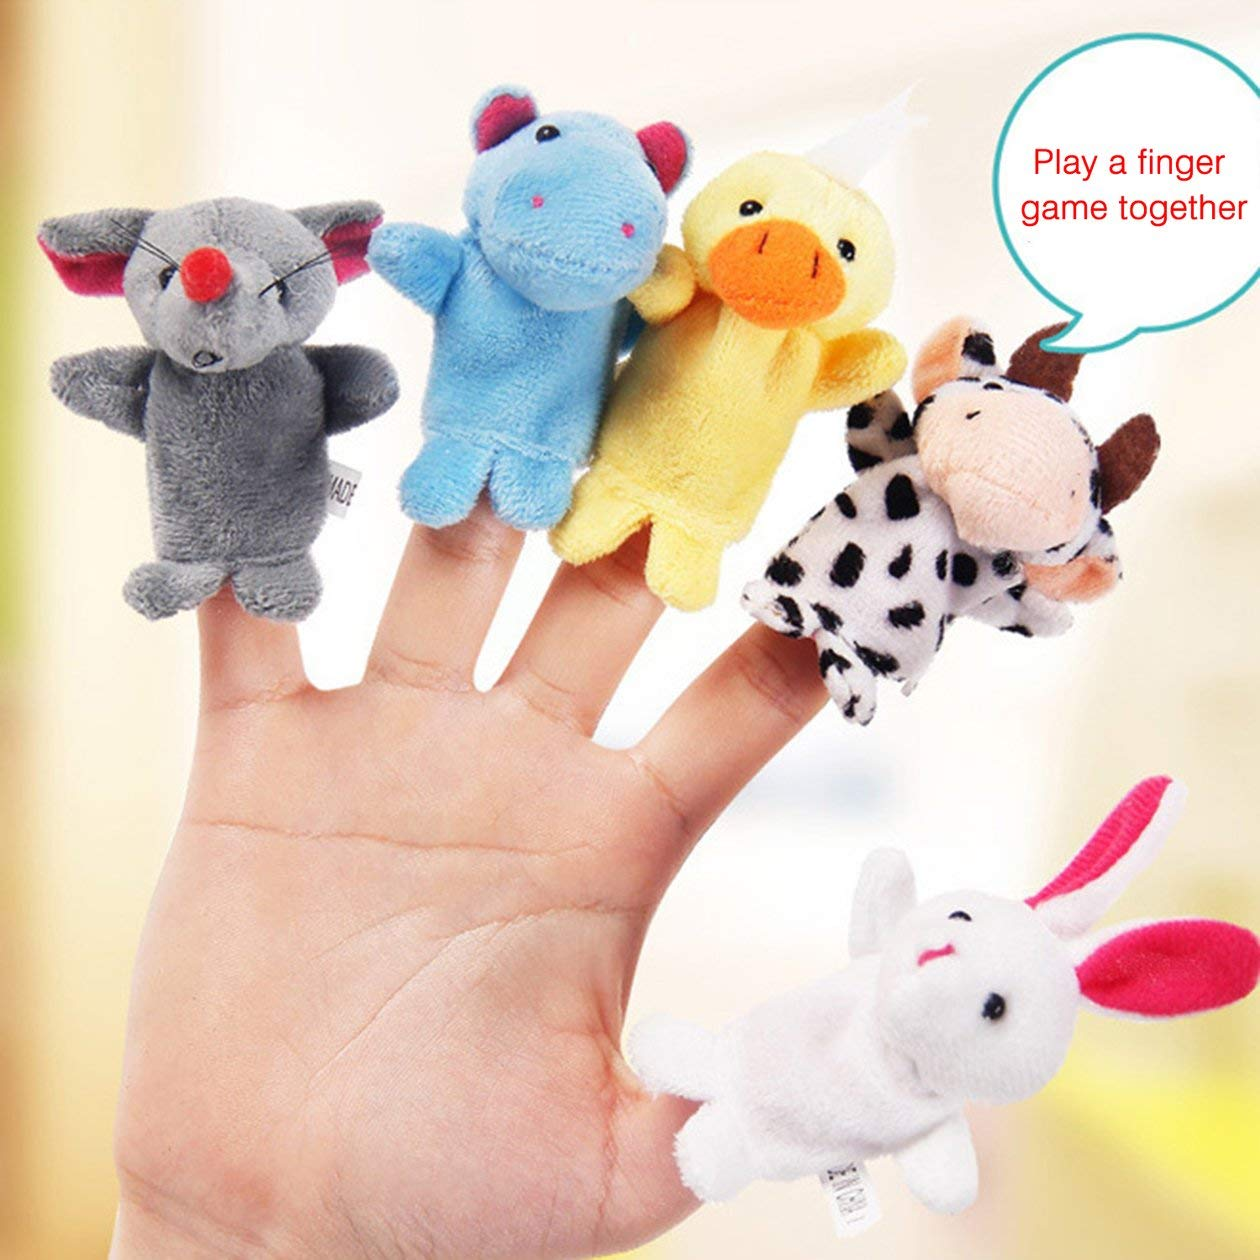 BIYI 10PC Funny Baby Plush Toy Animal Finger Puppets Double Layer with Feet Storytelling Props Doll Hand Puppet Kids Toys Kids Gift random